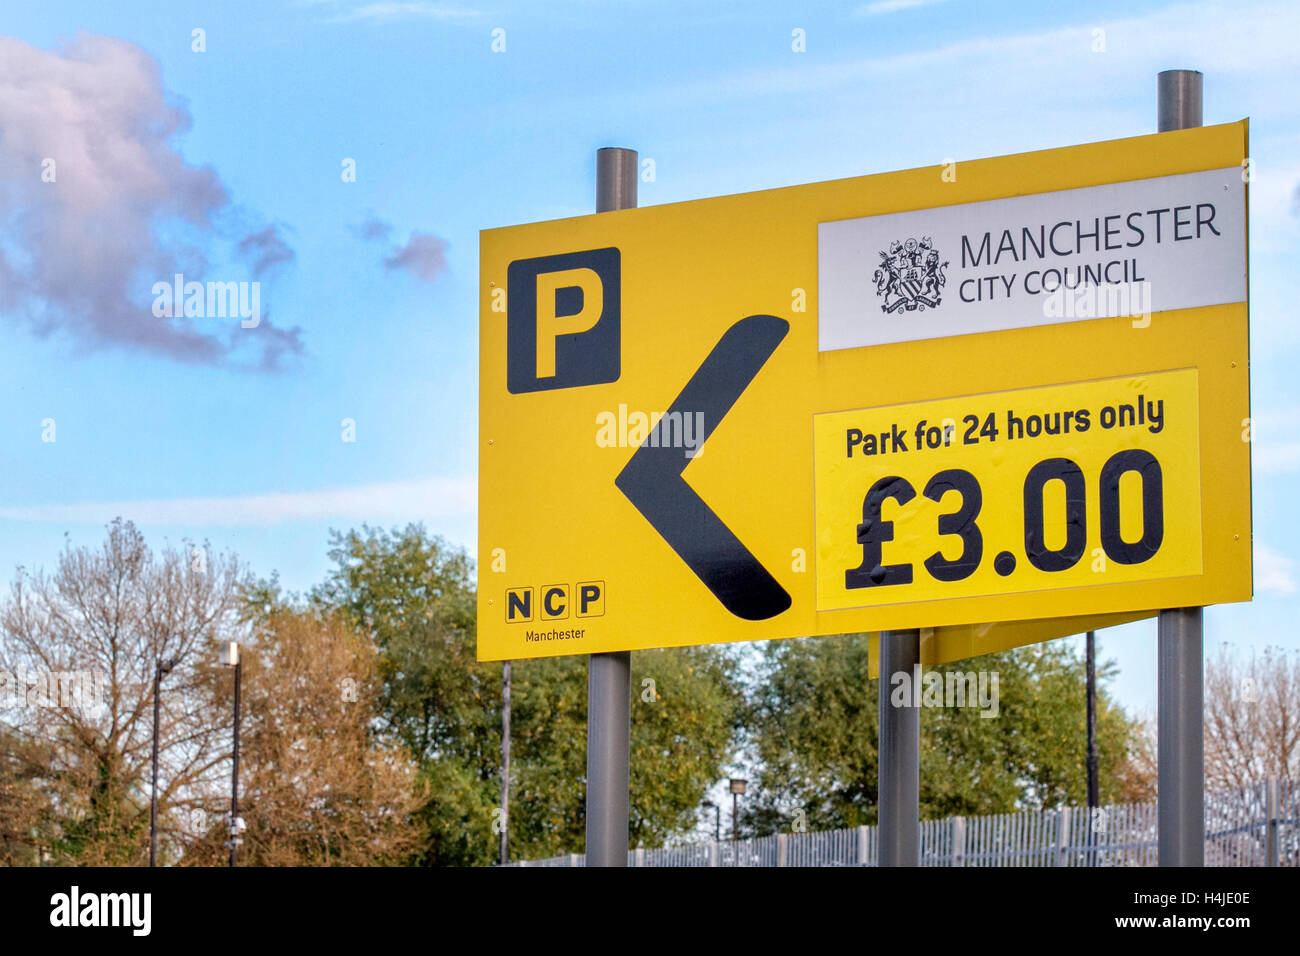 NCP Manchester City Council, parking for 24 hours only, £3, Greater Manchester, UK - Stock Image